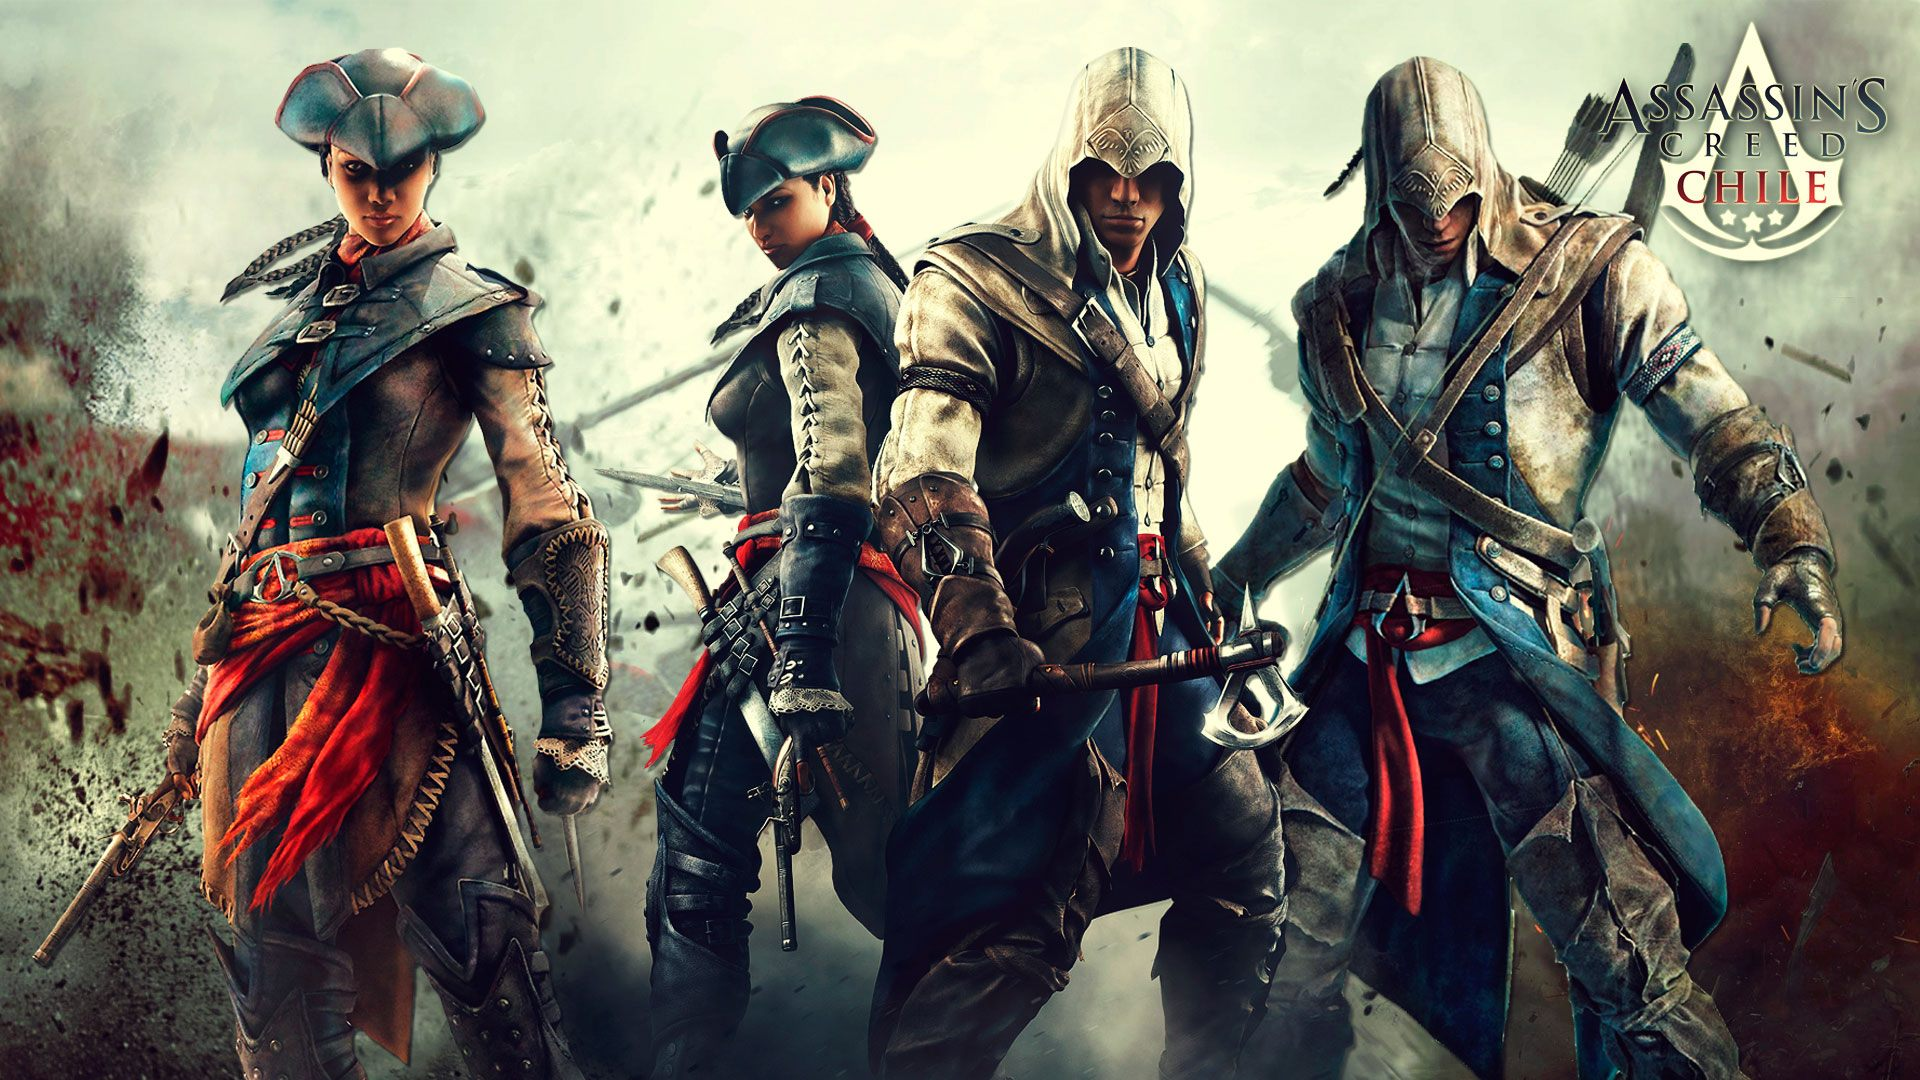 Assassin S Creed 3 The Assassin S Wallpaper 31806225 Fanpop